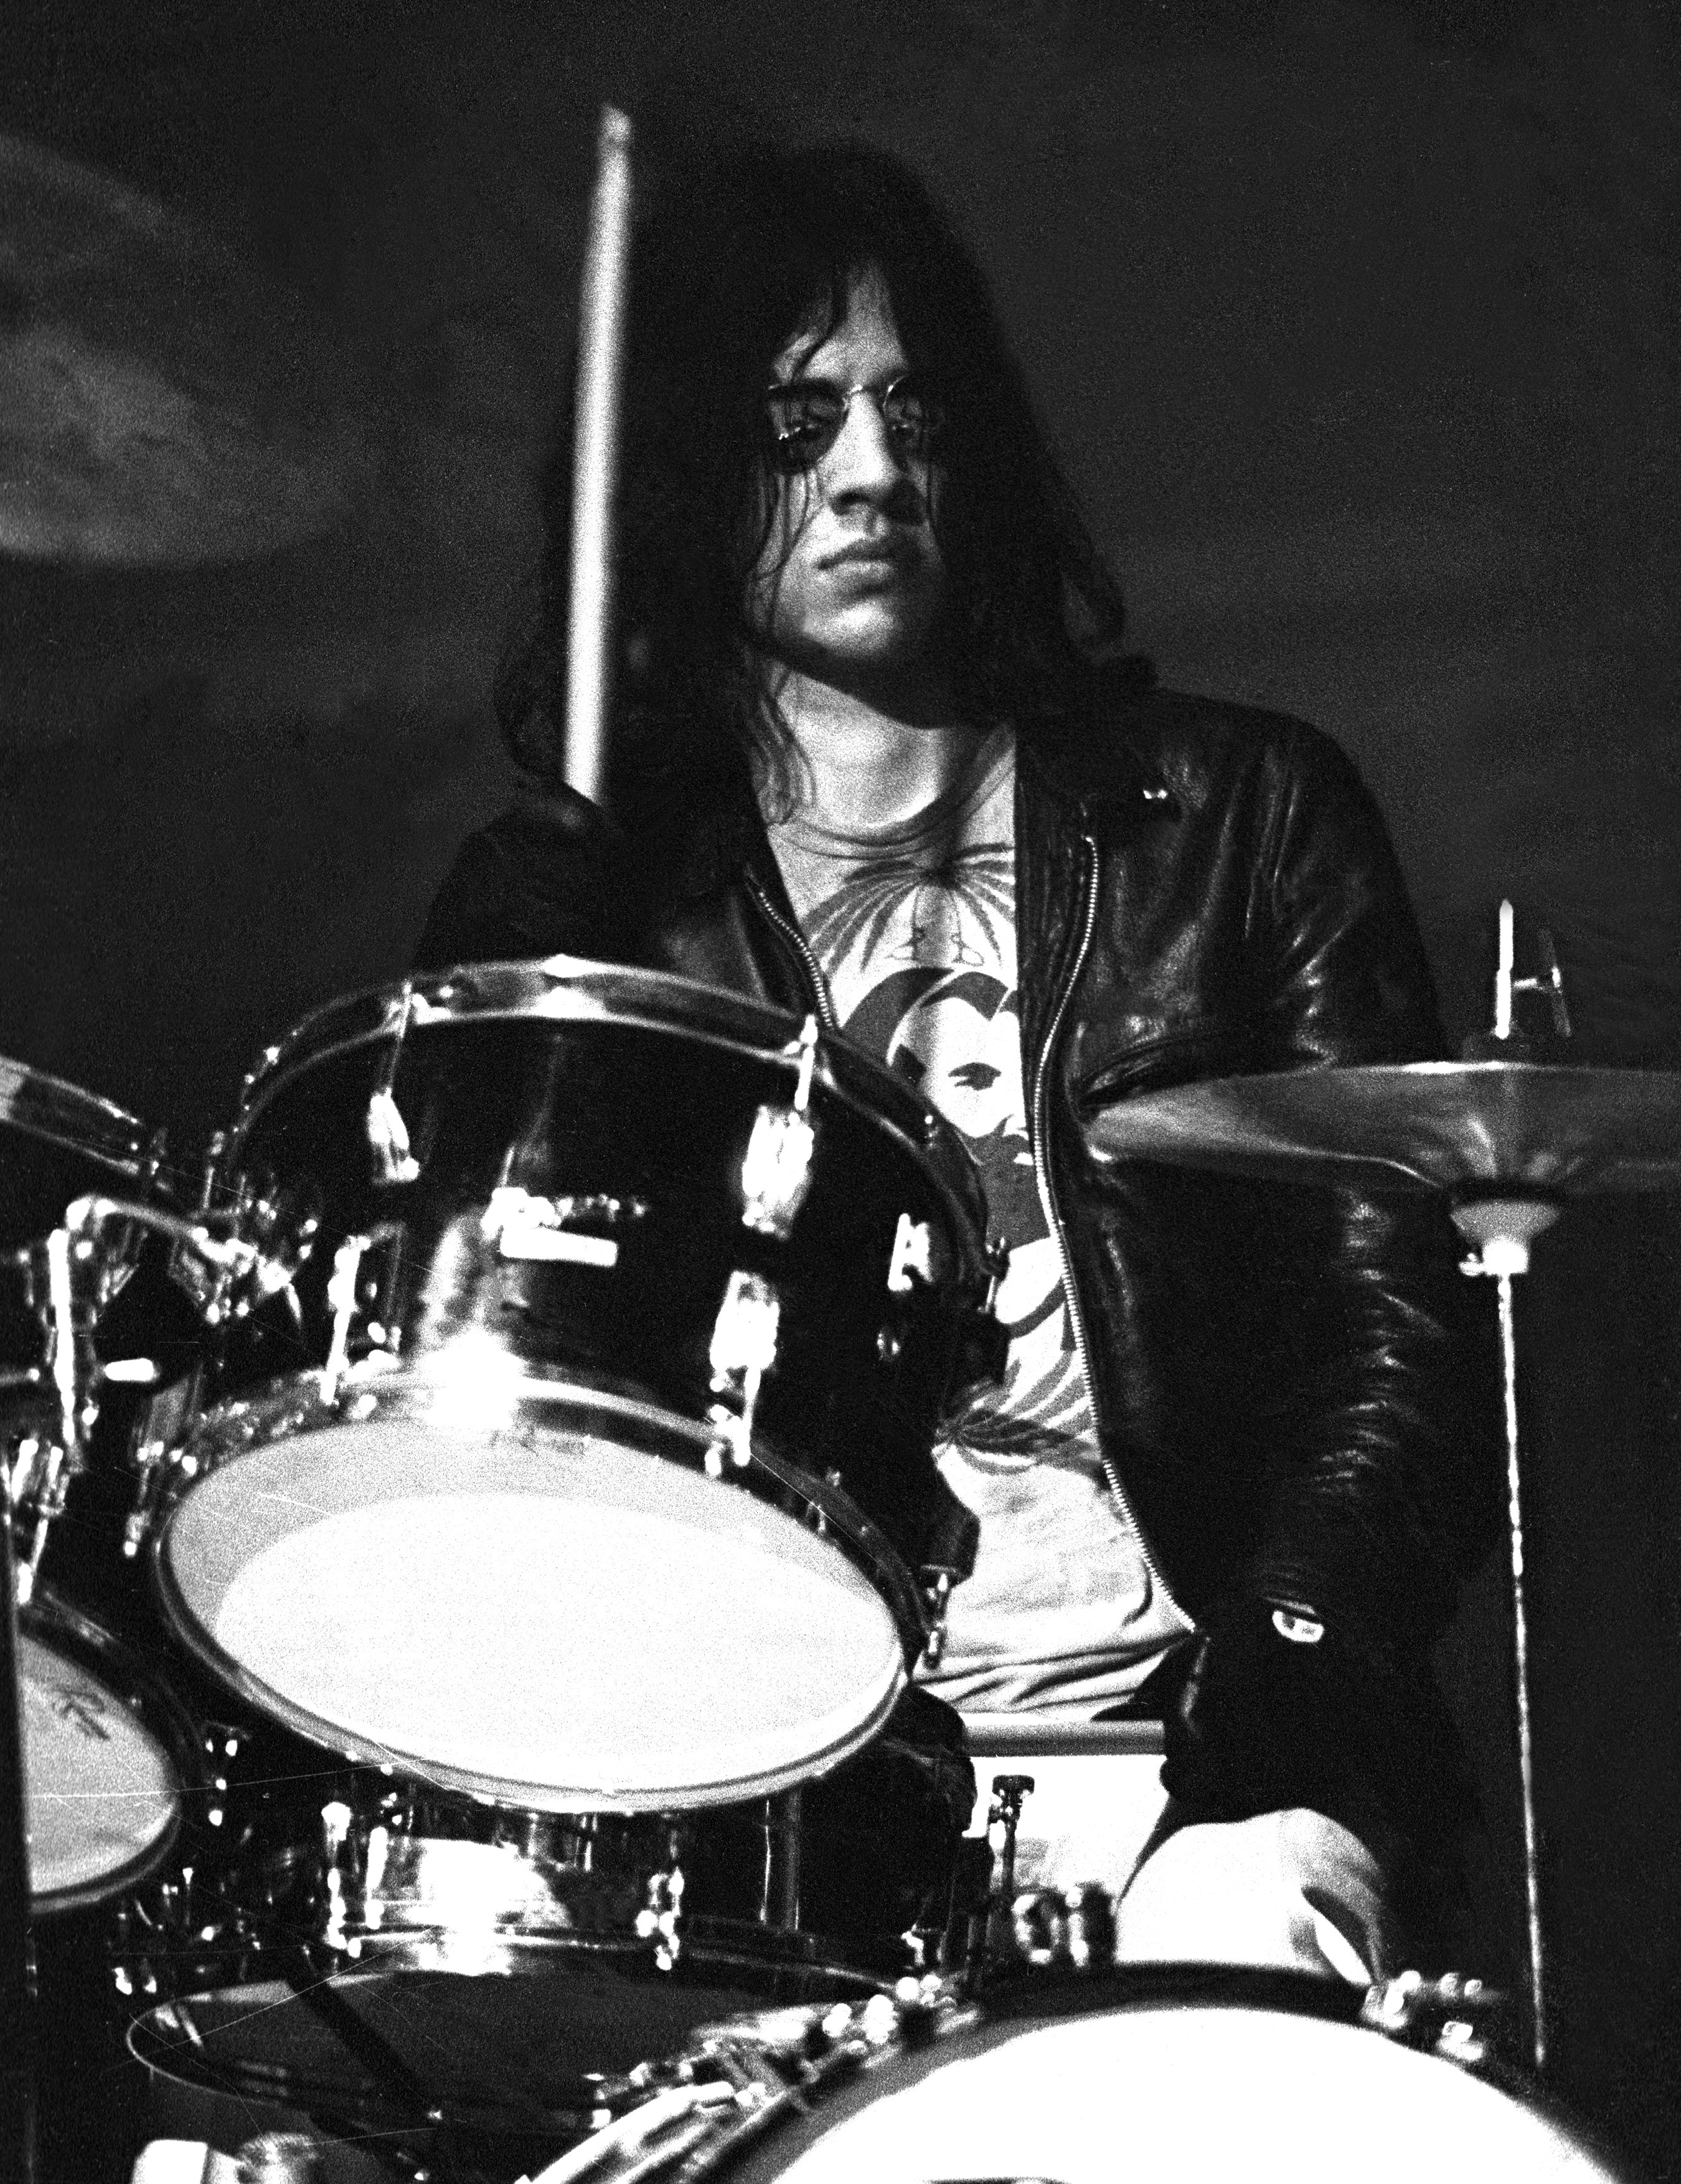 ANN ARBOR, MI - 1970:  Drummer Scott Asheton of Iggy andThe Stooges performs in 1970 in Ann Arbor, Michigan. (Photo by Tom Co